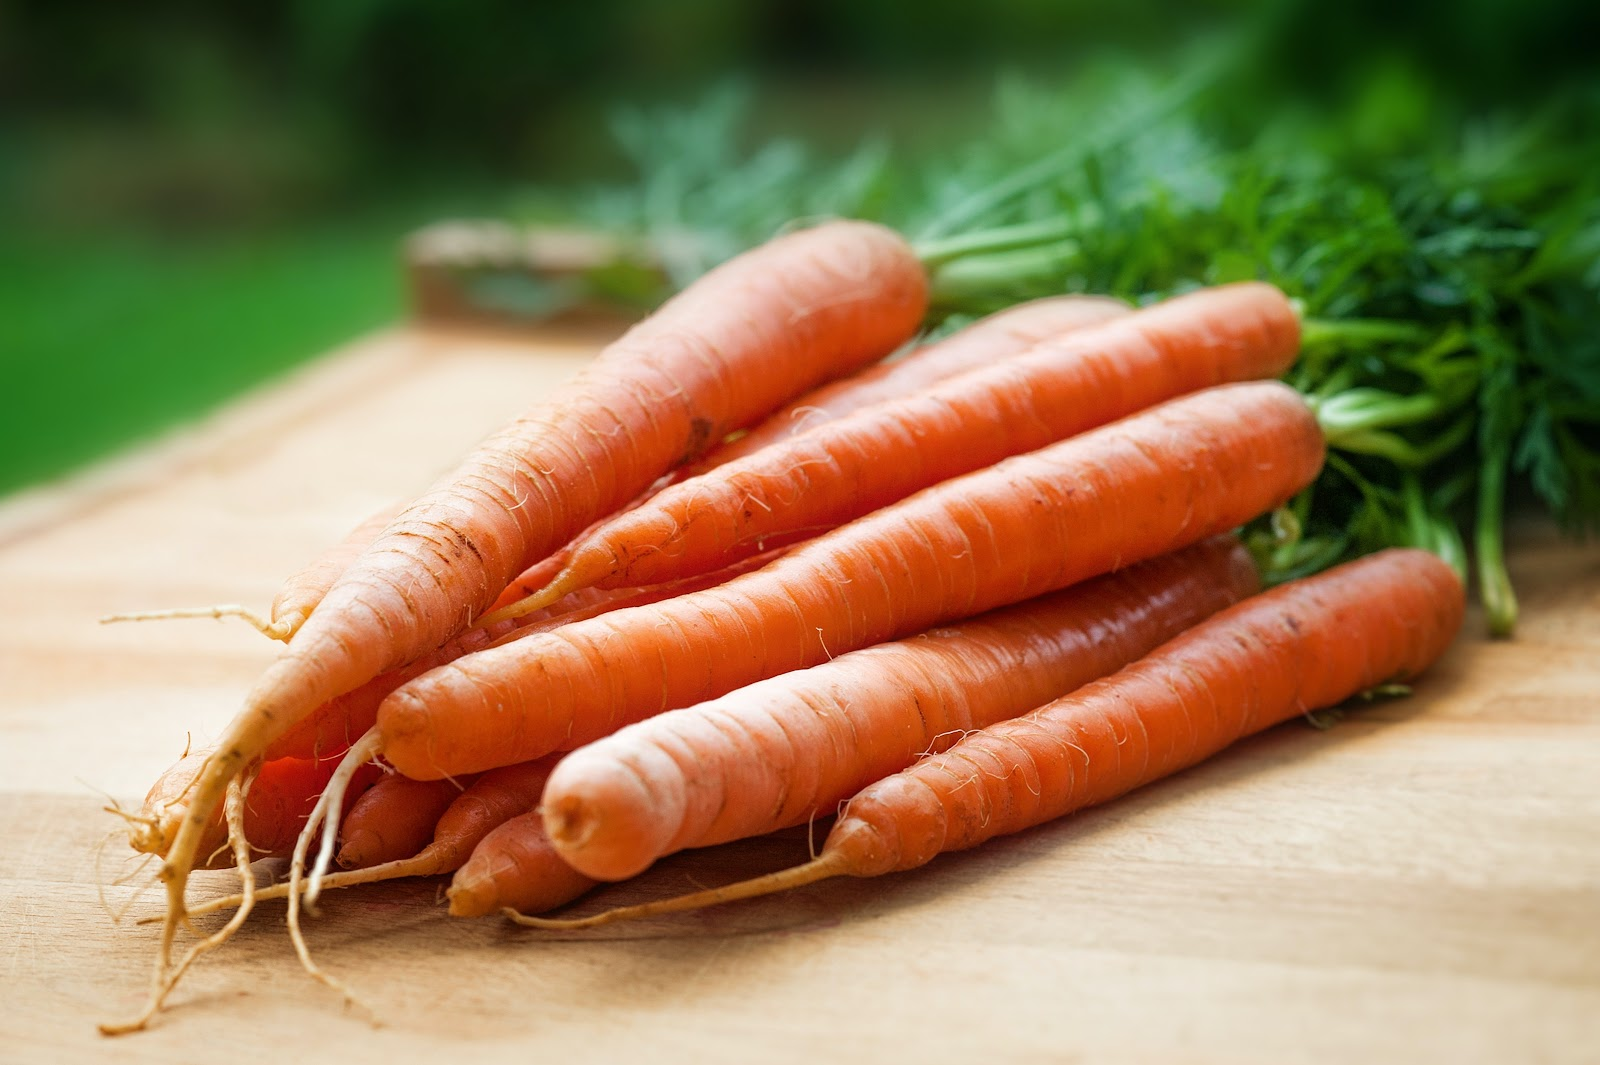 Carrot is great for the eyes